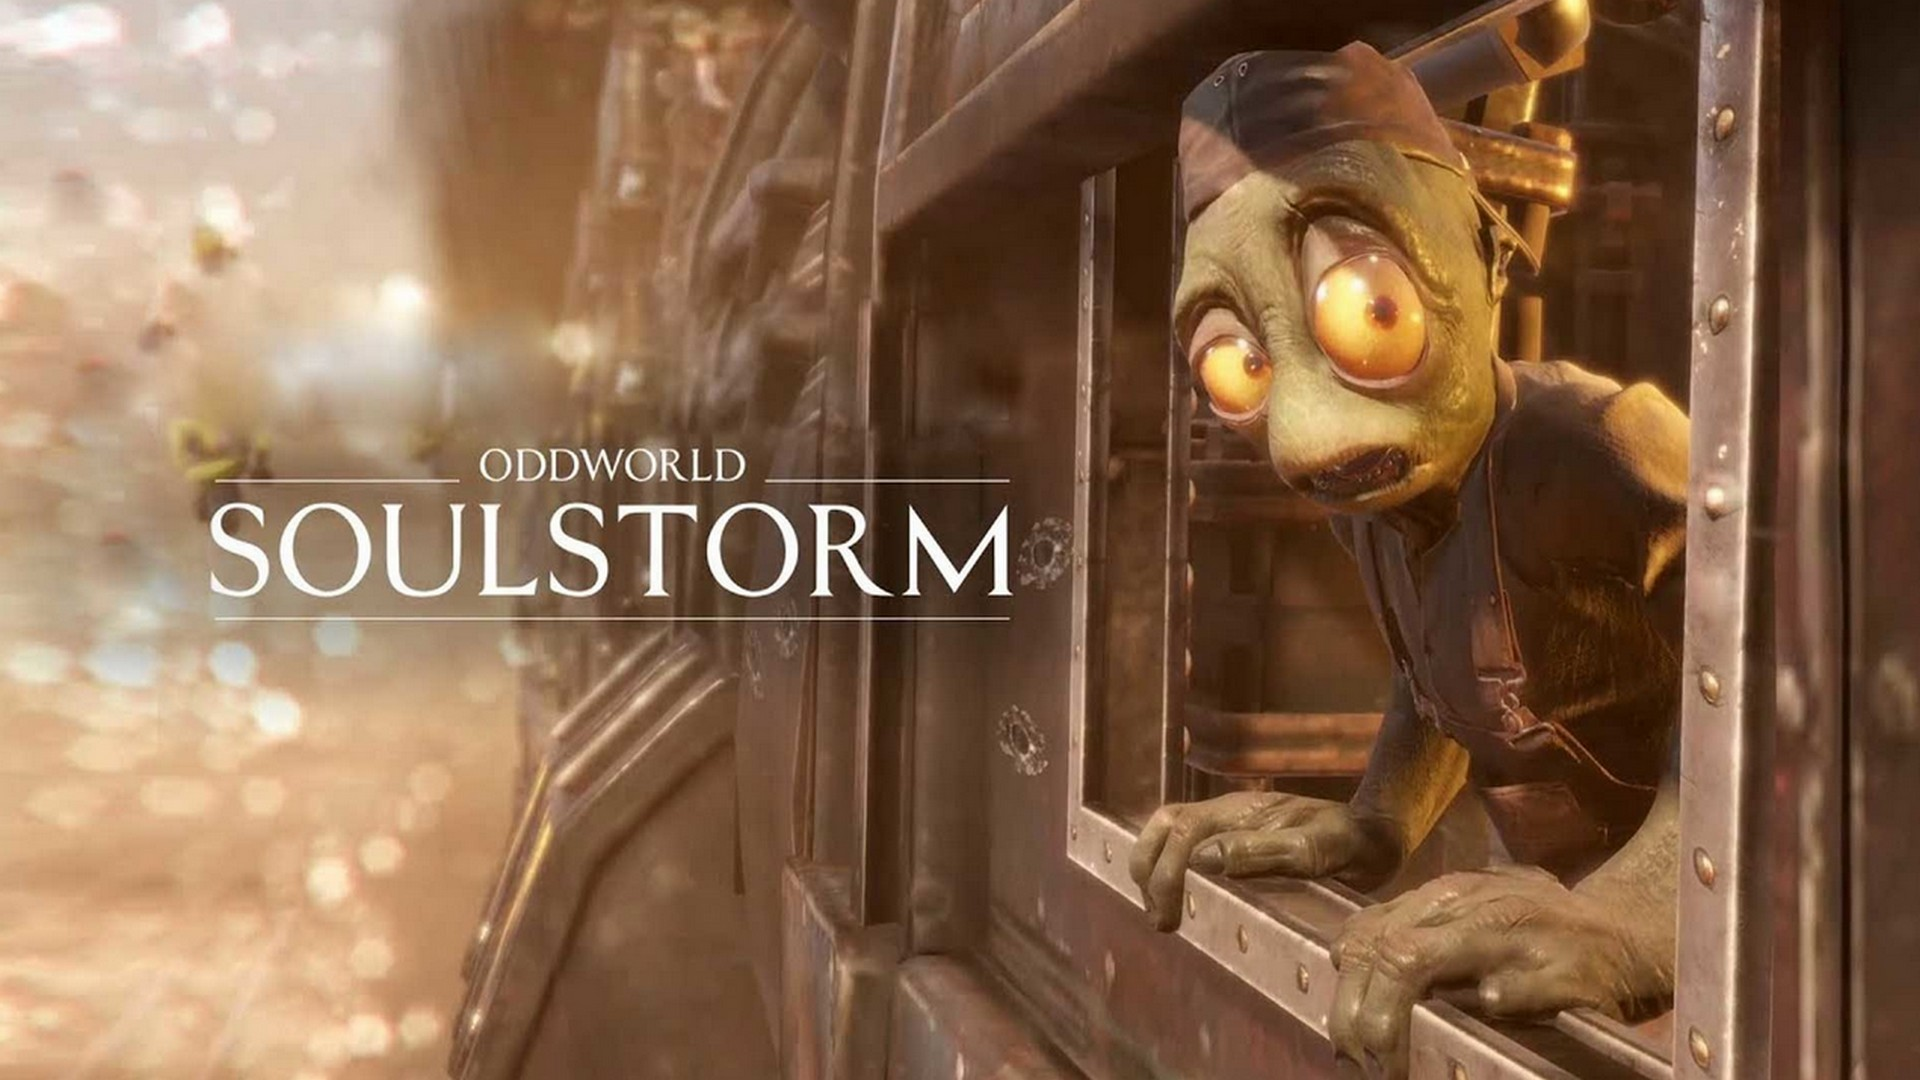 Oddworld Inhabitants & Microids Sign A Co-Publishing Deal For The Physical Version Of The Highly Anticipated Oddworld: Soulstorm!